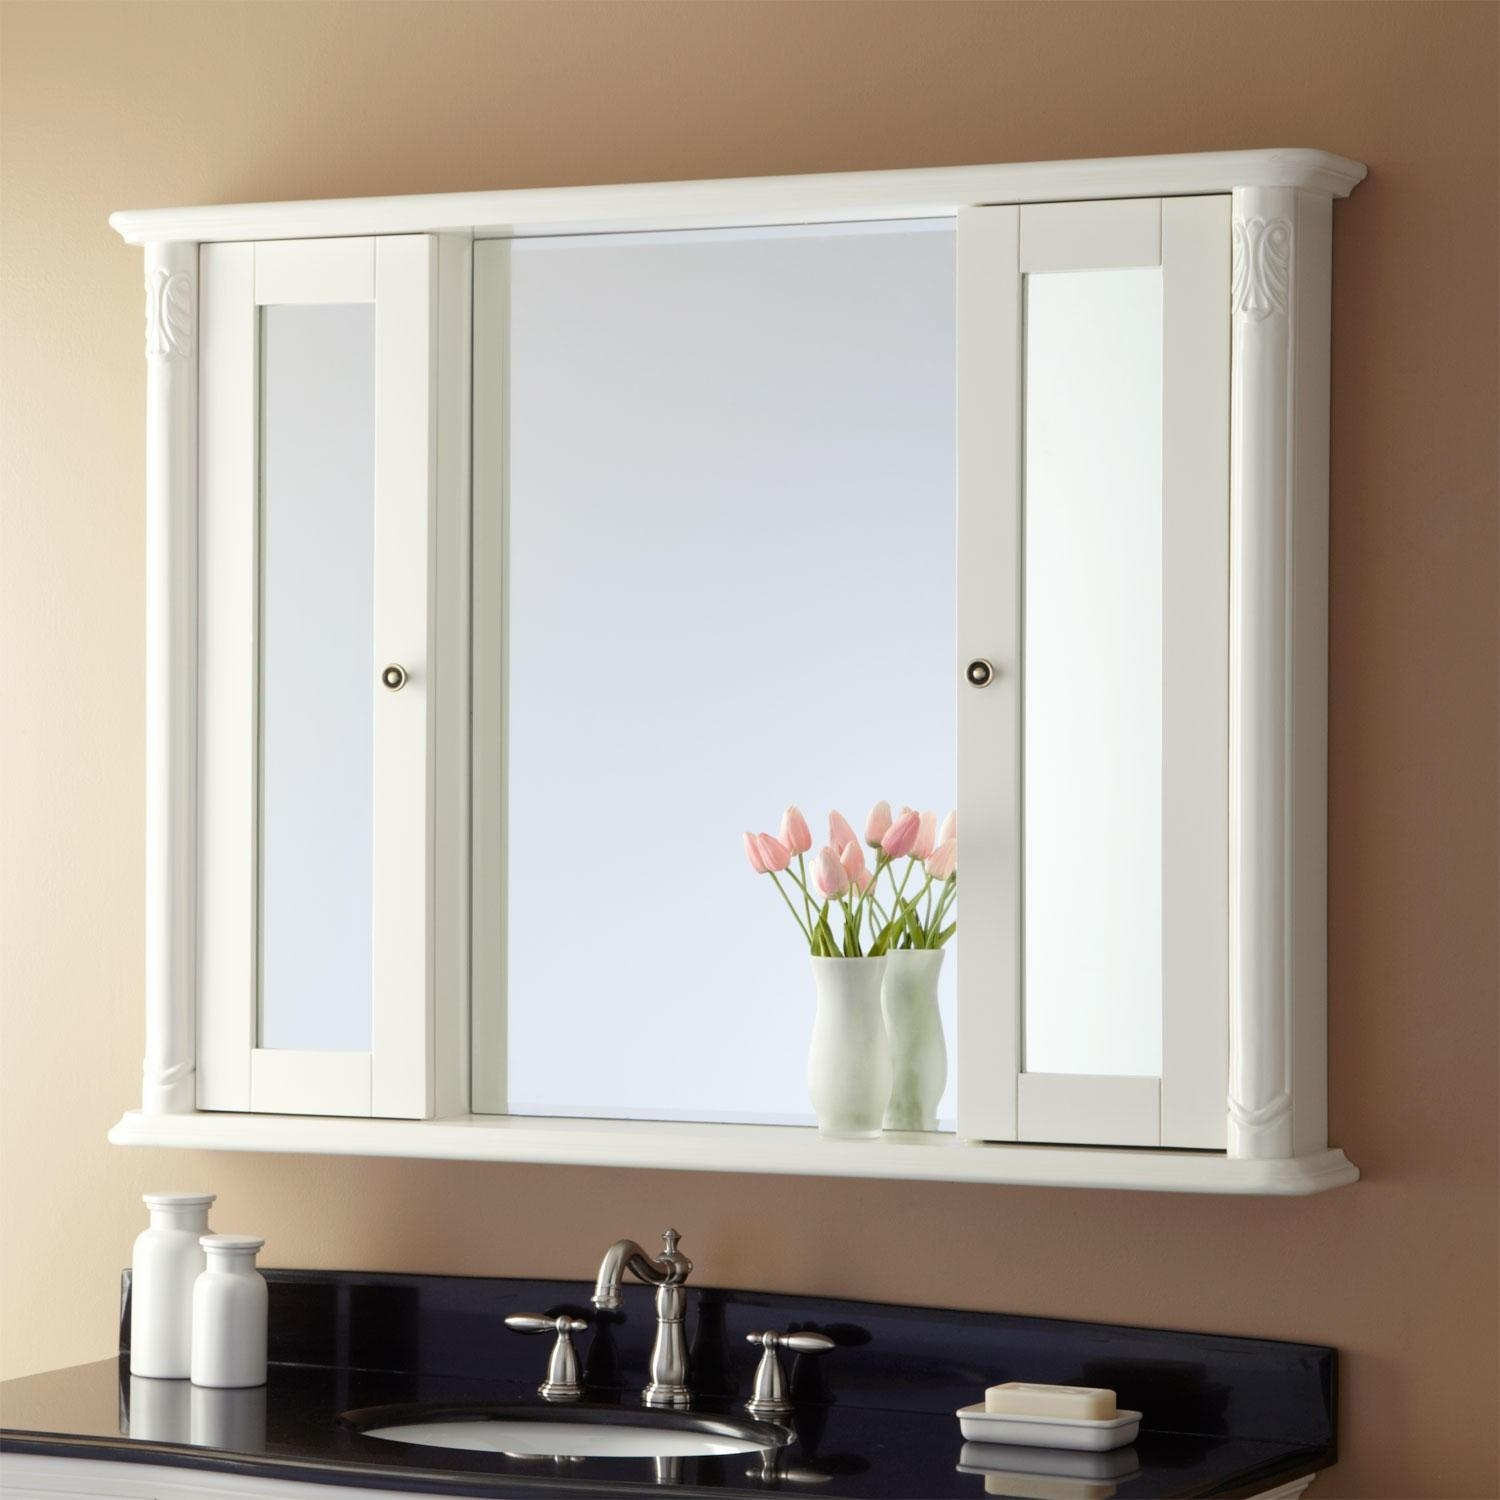 Featured Image of Bathroom Medicine Cabinets And Mirrors